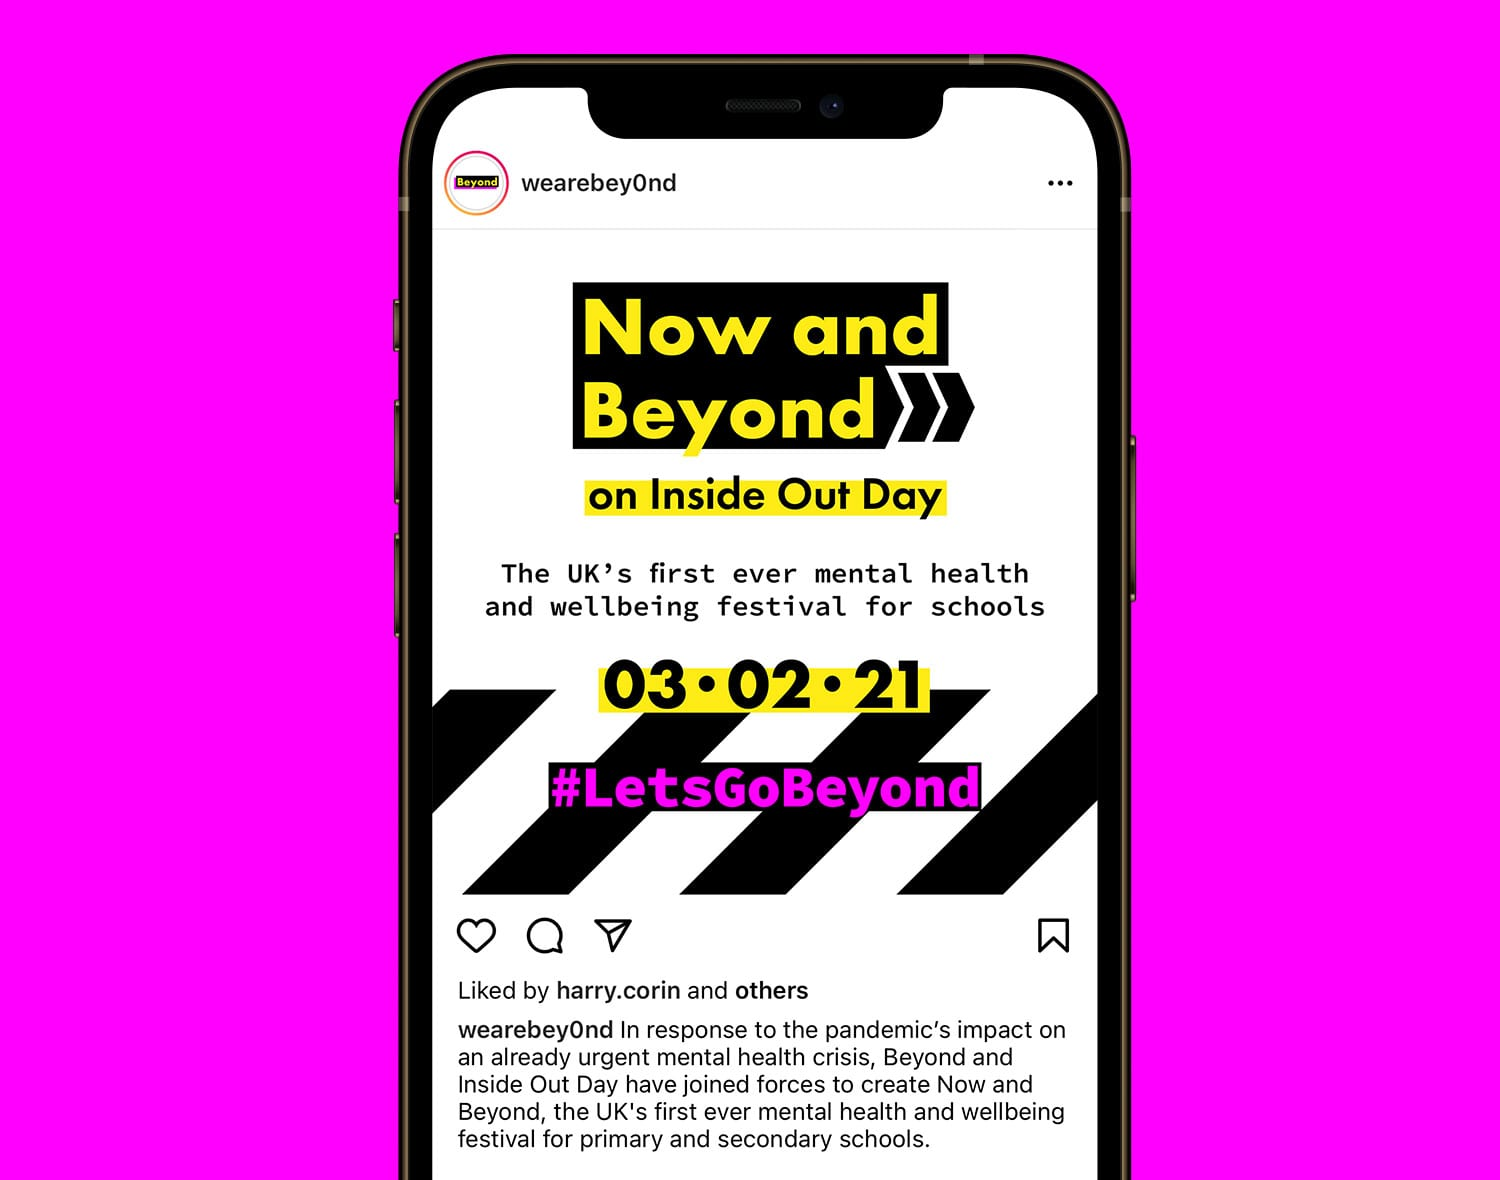 Now and Beyond social